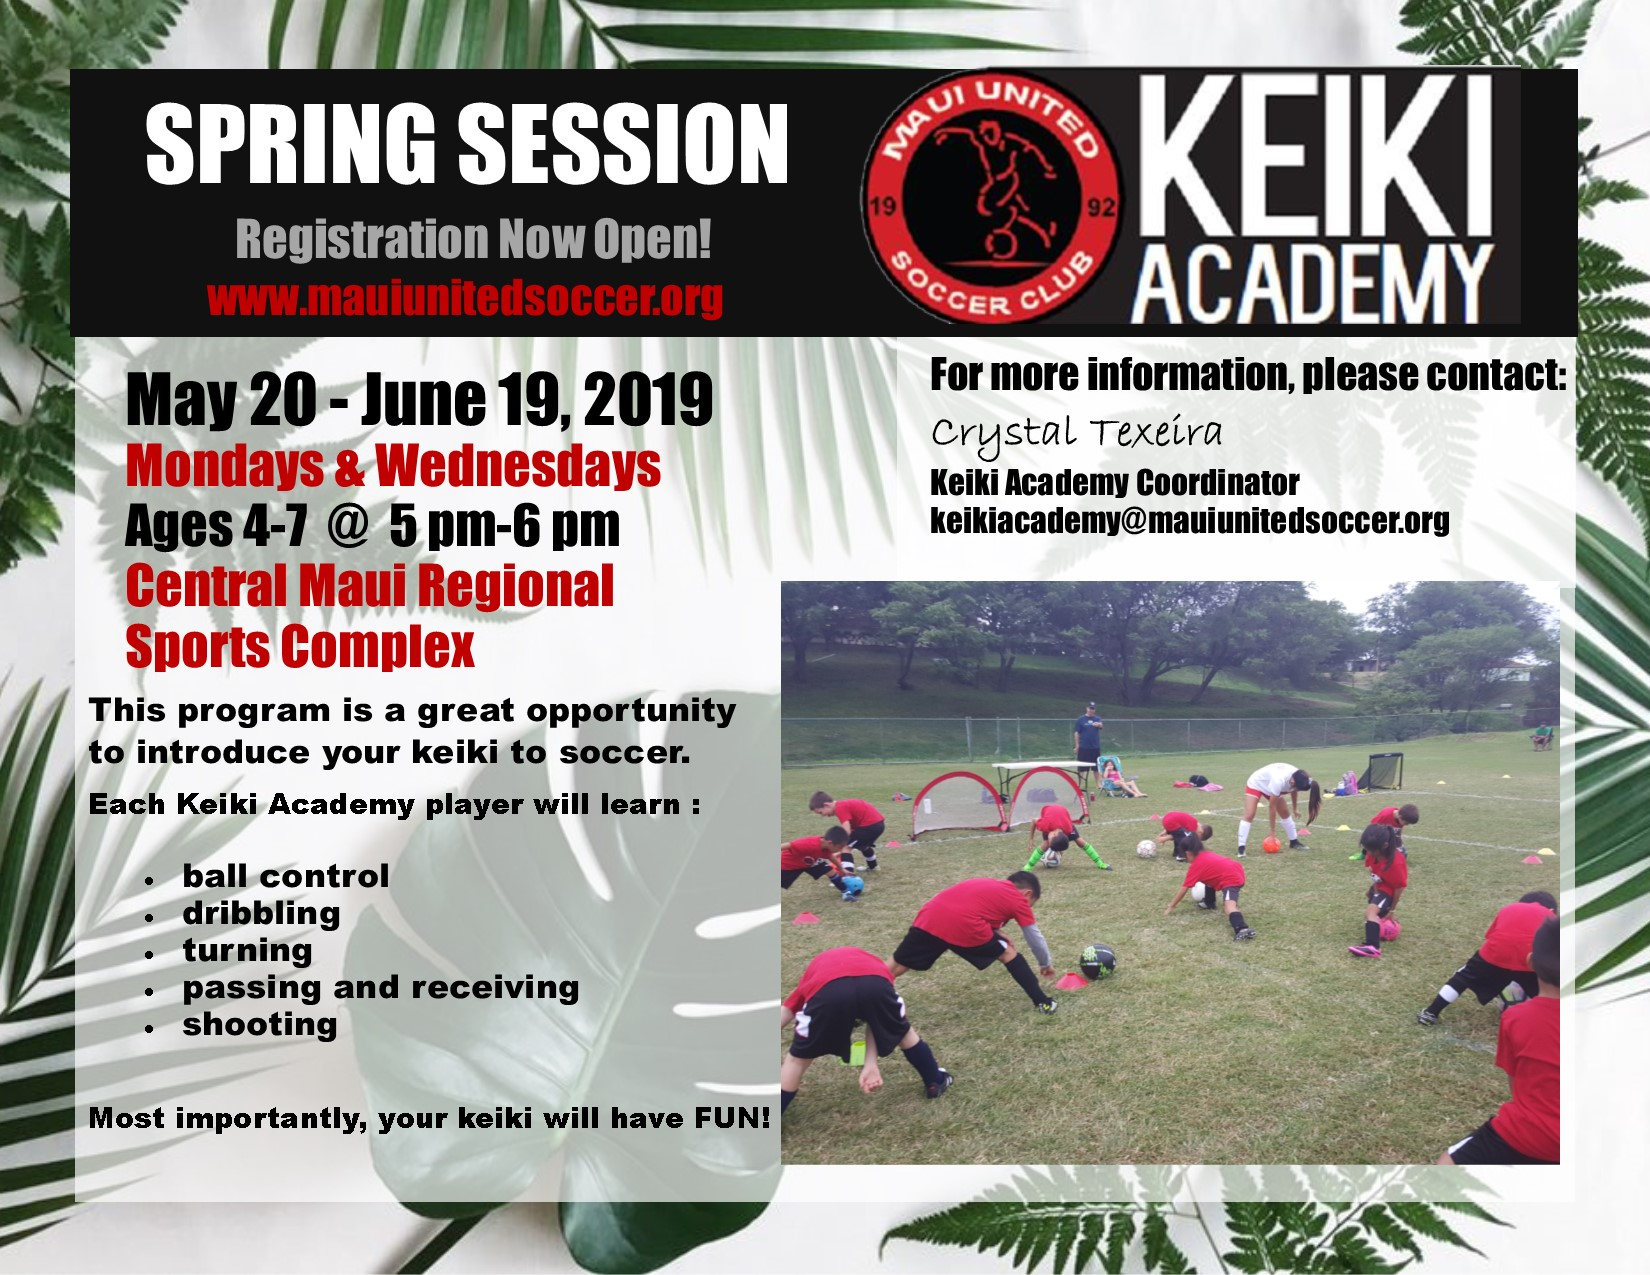 Summer Session May 20 - June 19, 2019